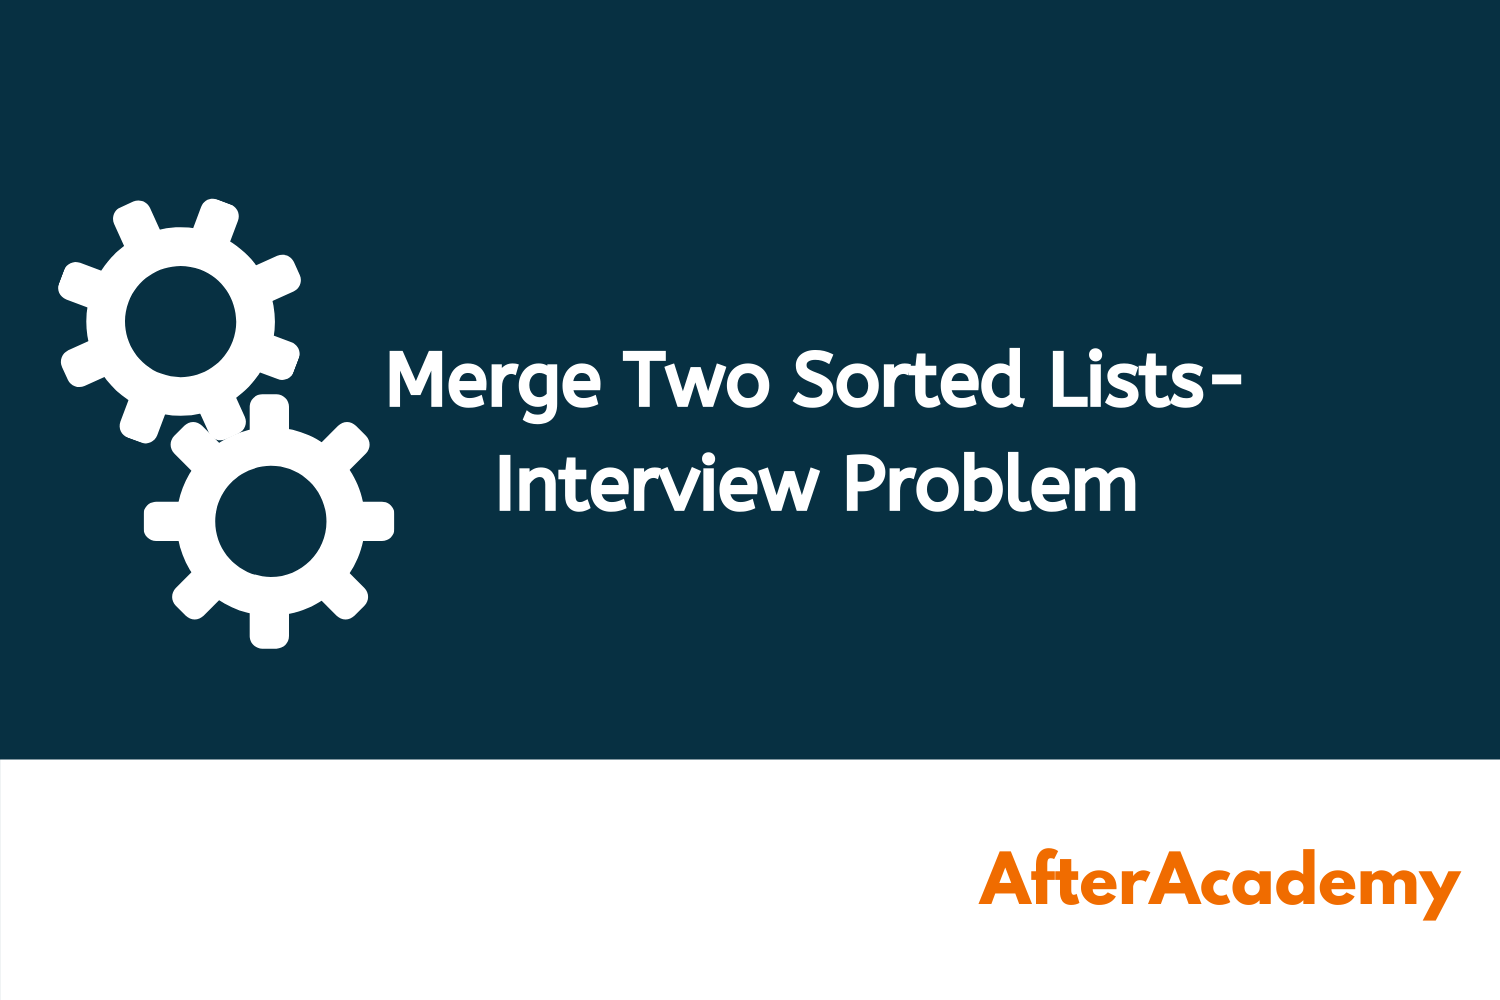 Merge Two Sorted Lists - Interview Problem